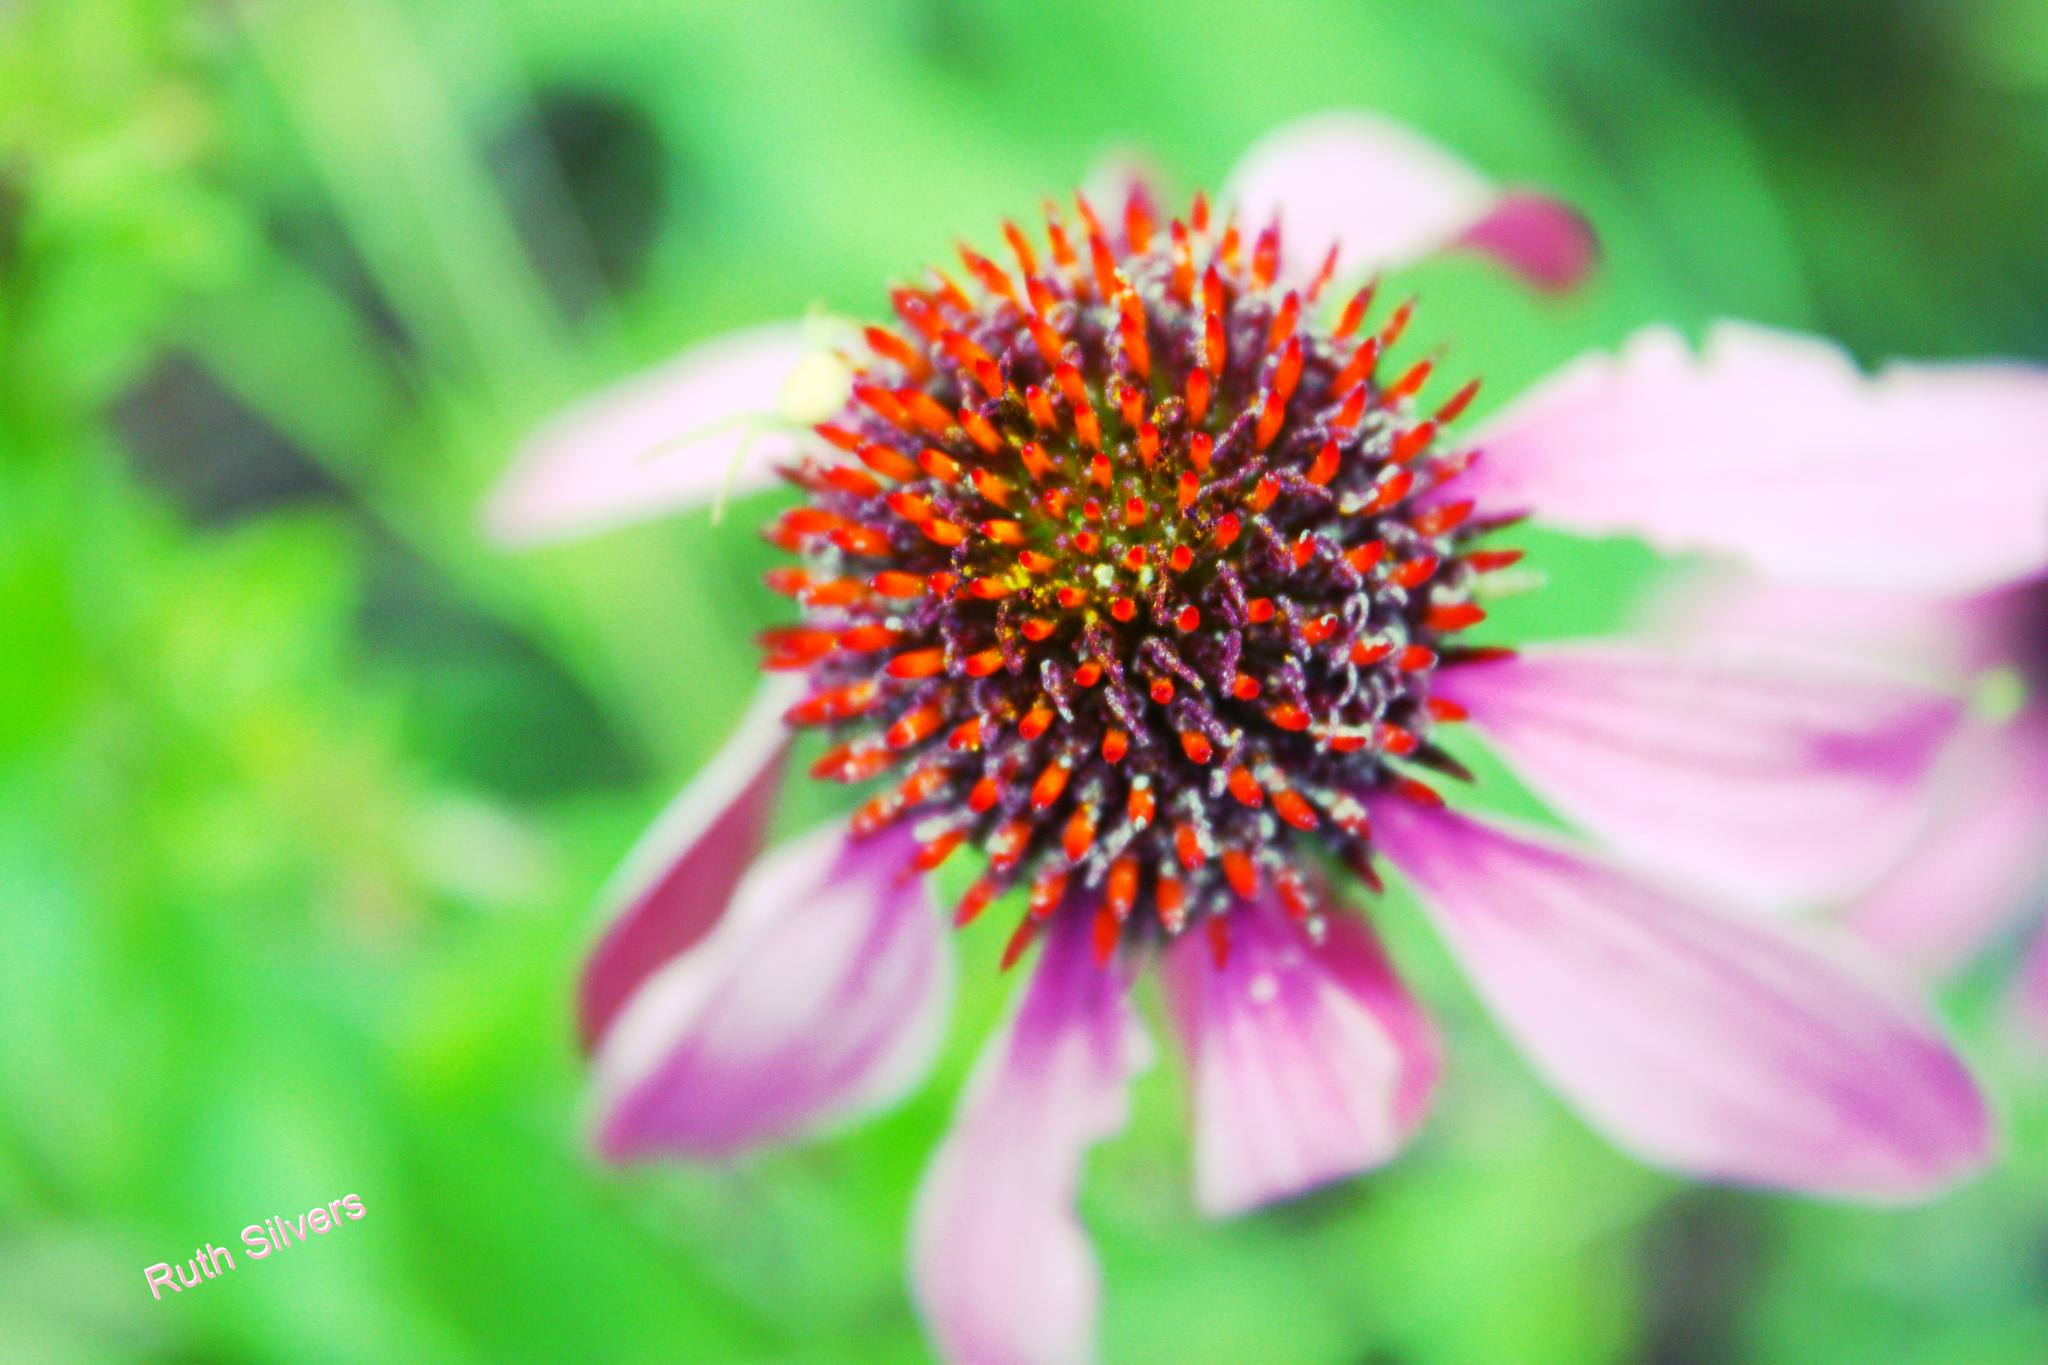 Depth of field by Ruth Silvers